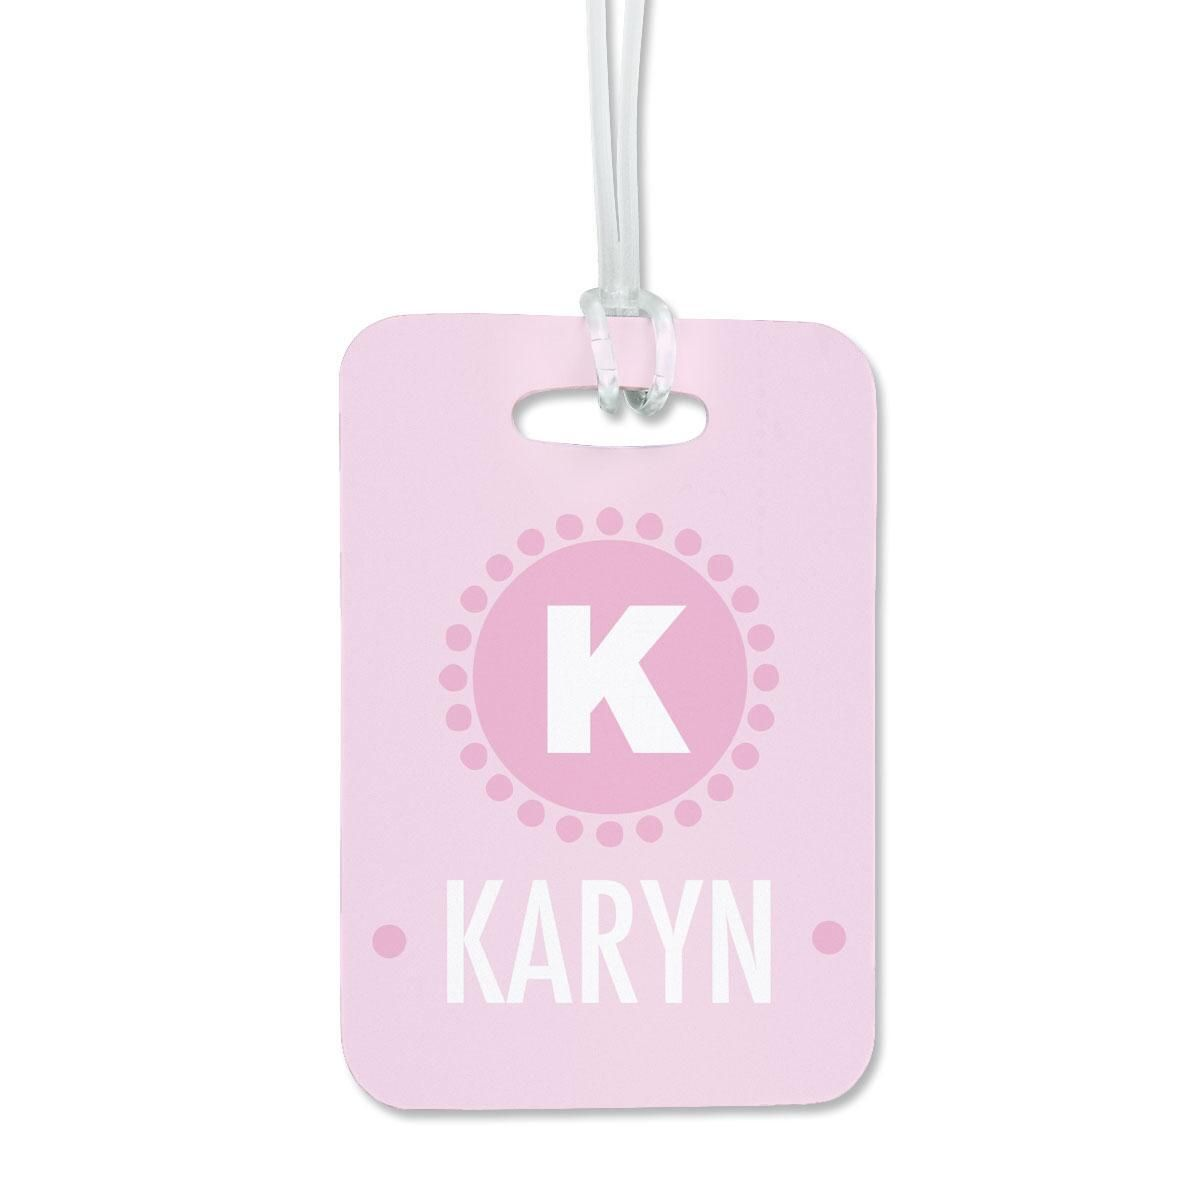 Circle Dots Luggage Tag